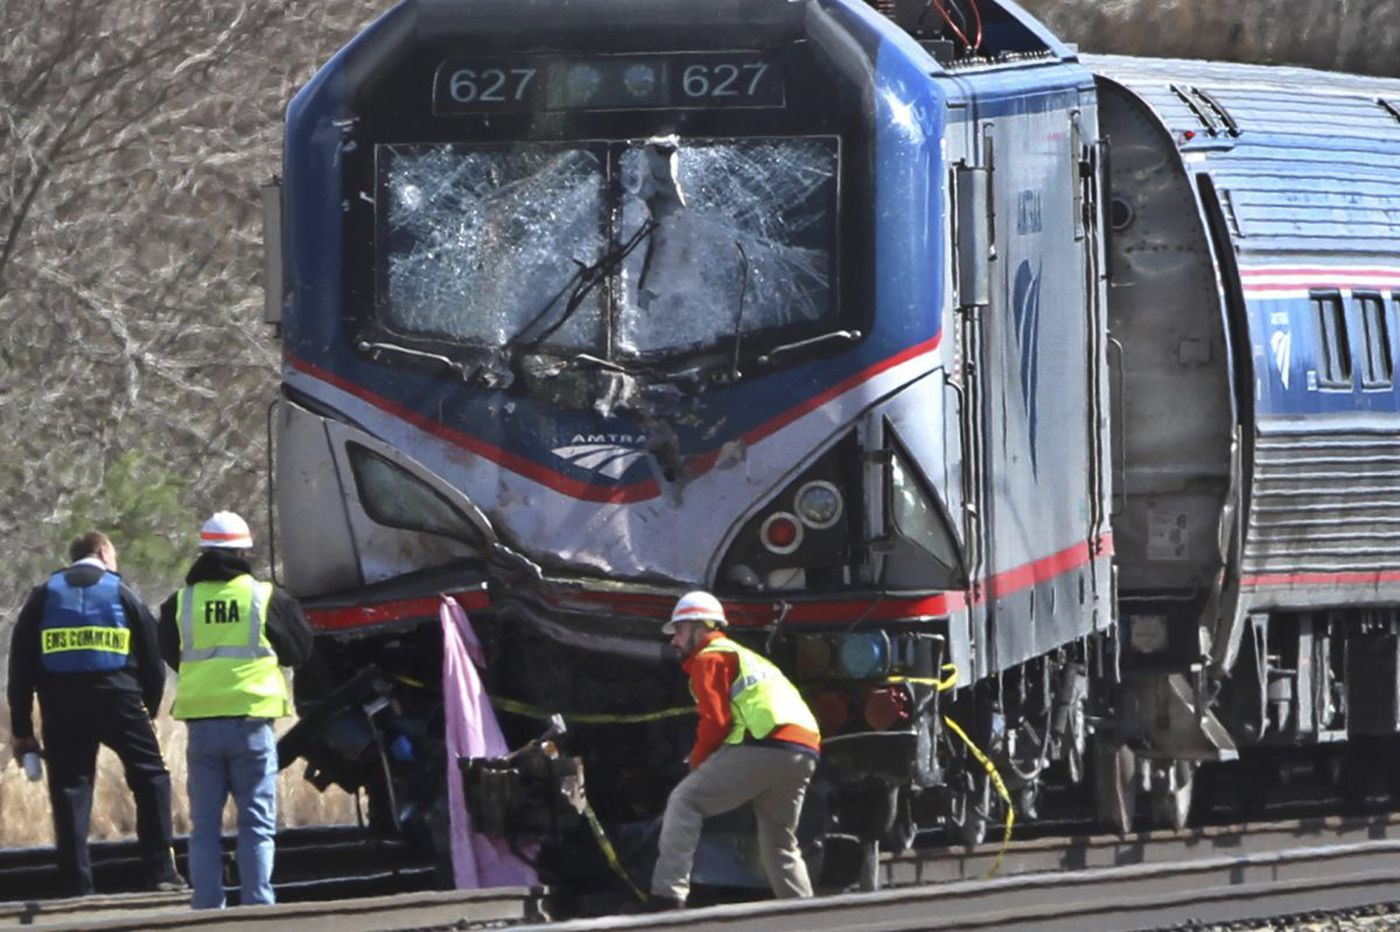 Amtrak has to fix labor relations and get back on safety track | Editorial